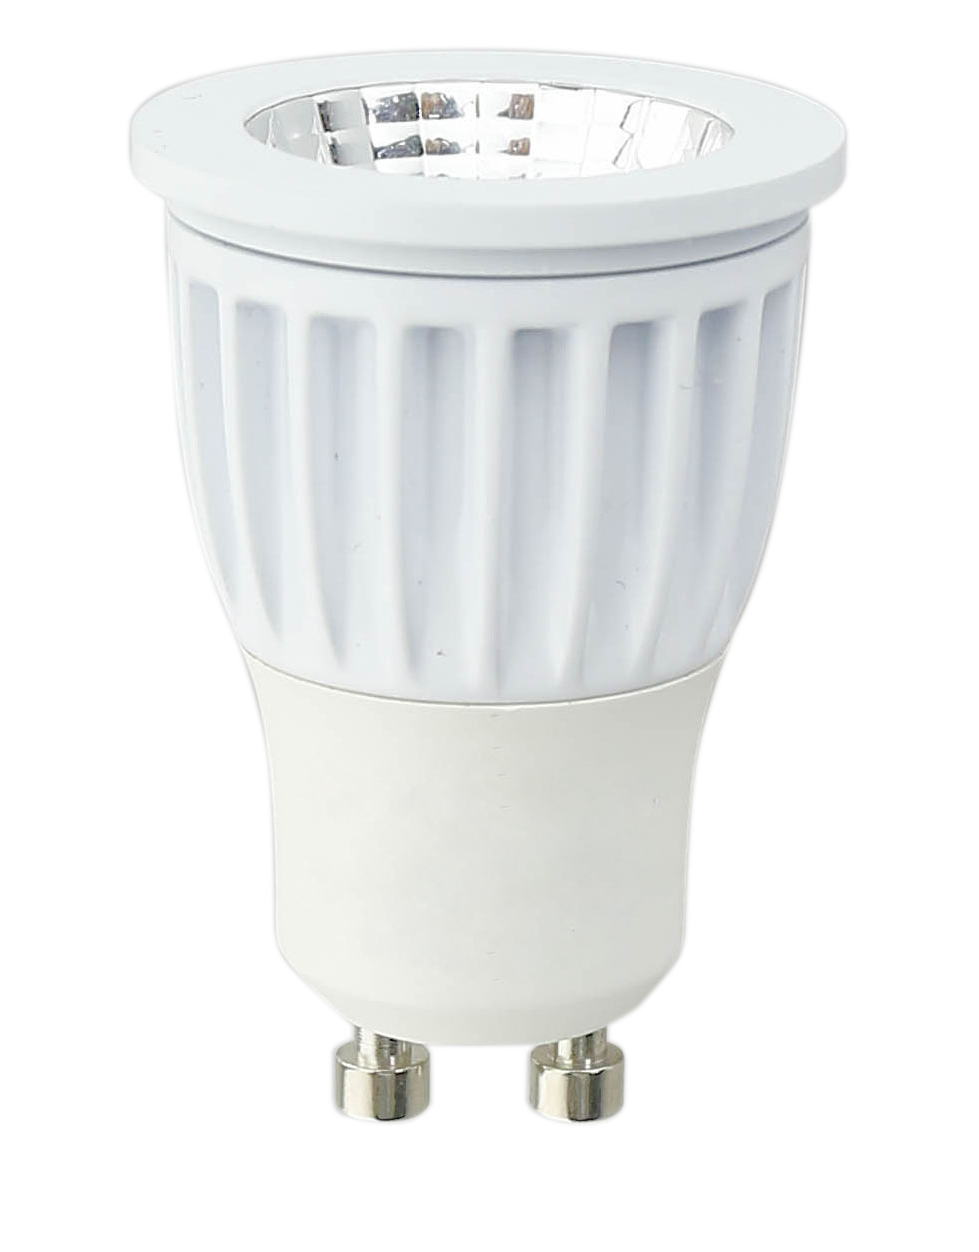 MR11 4w DIM led Spot Light